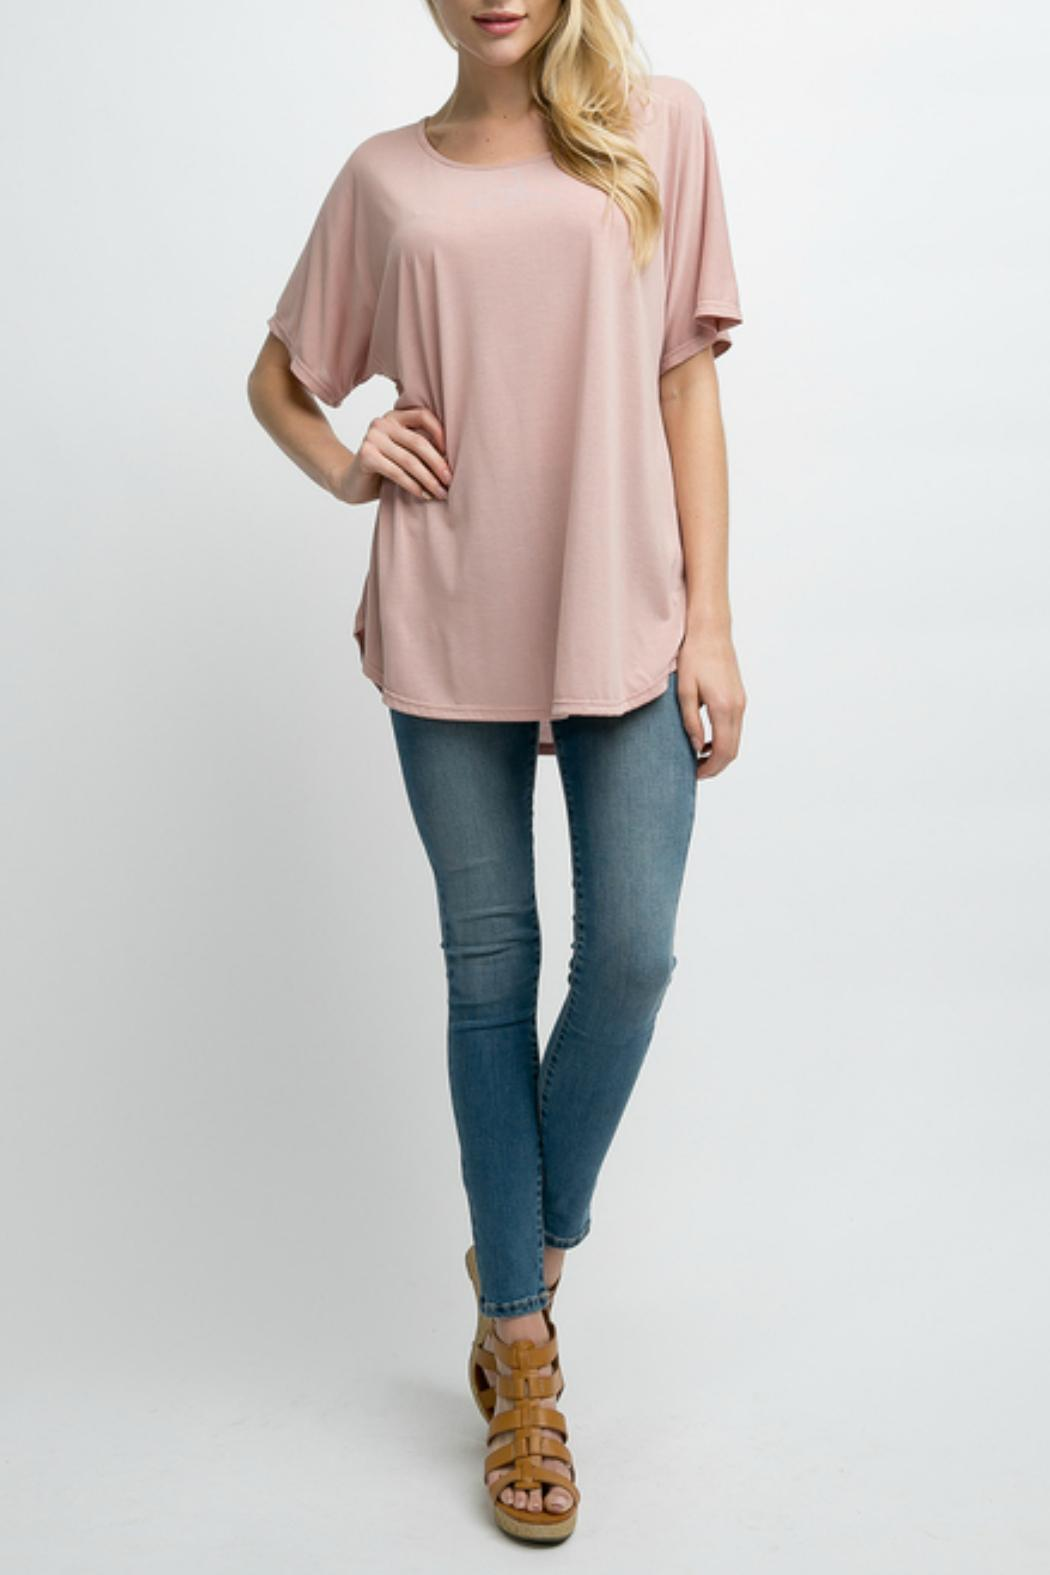 Andree by Unit Modal Tunic Top - Main Image